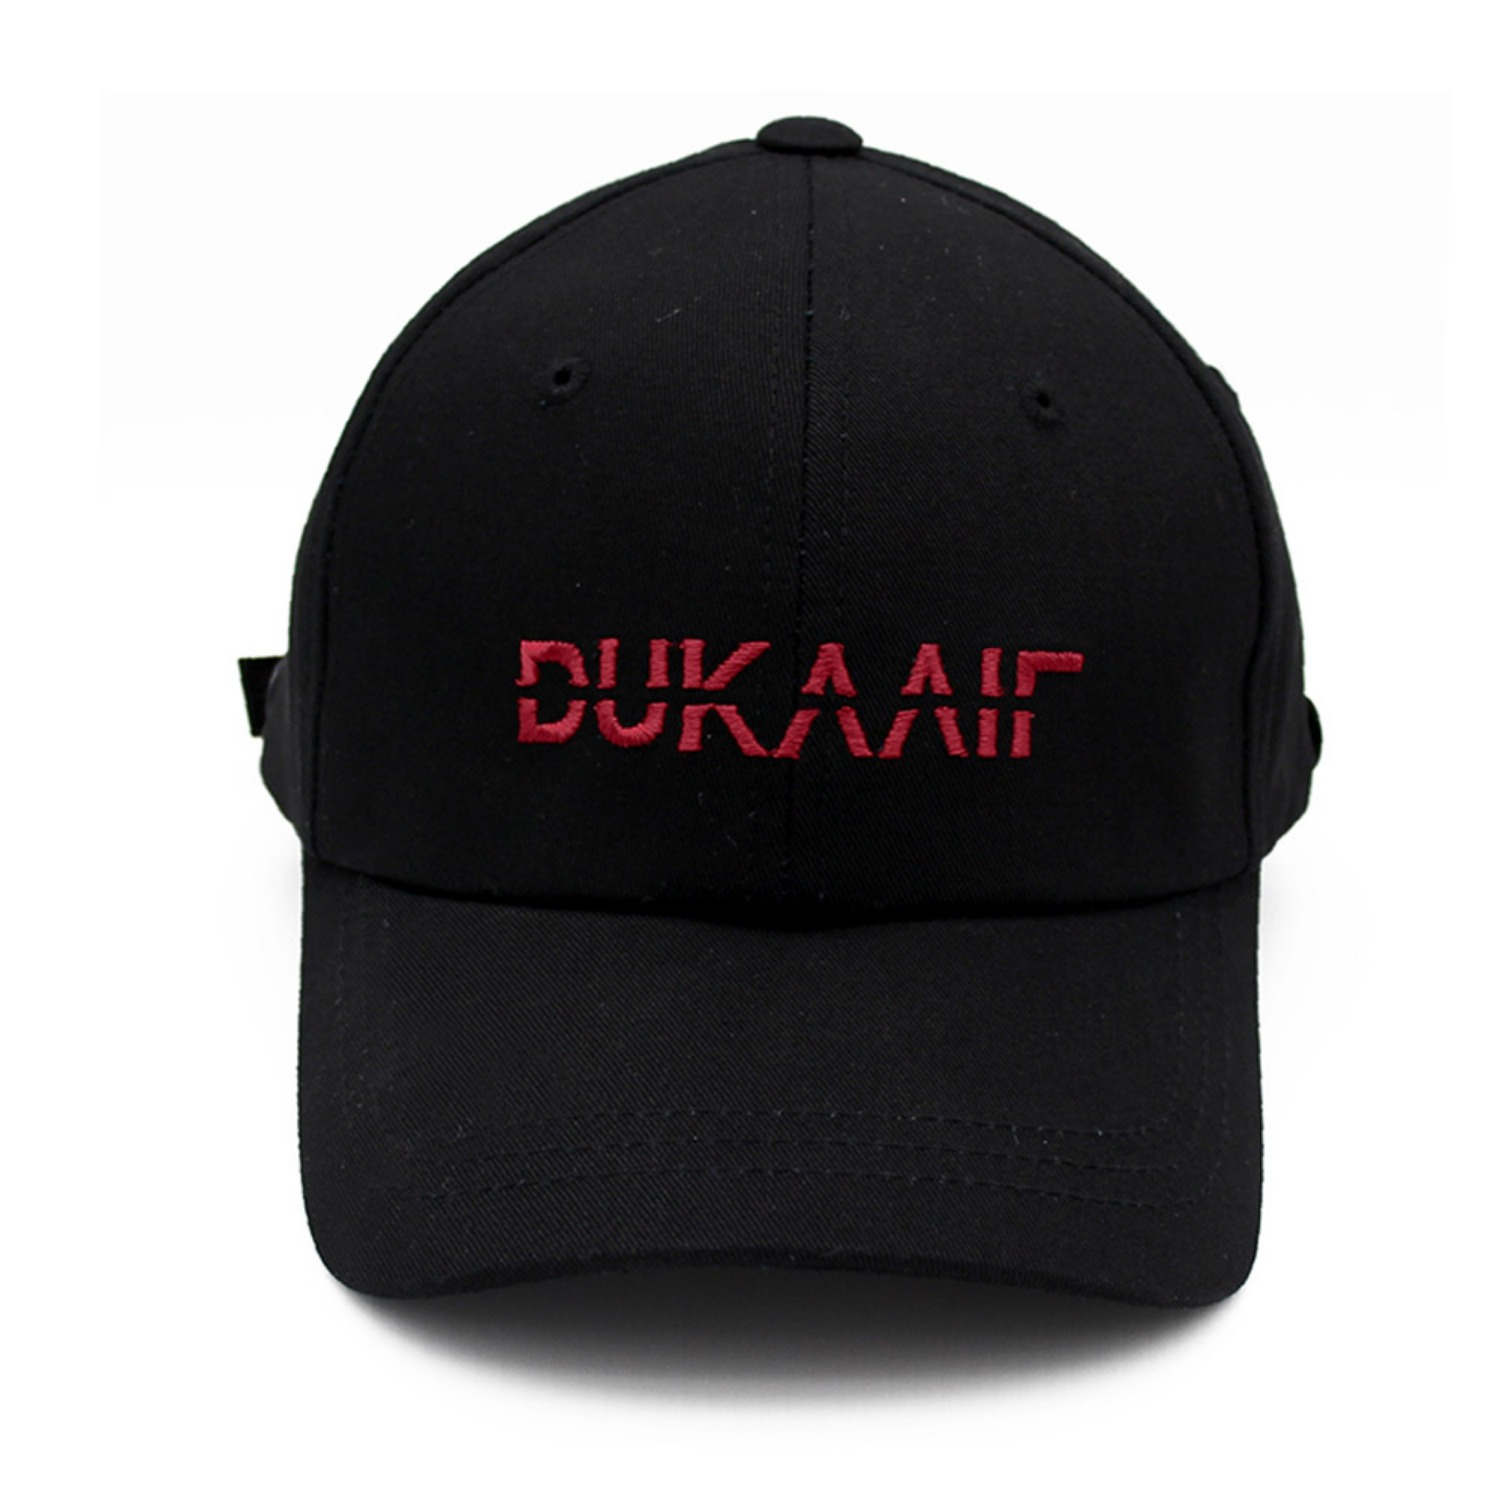 Frankendust 2.0 dukaaif Logo Black&Red(cotton)